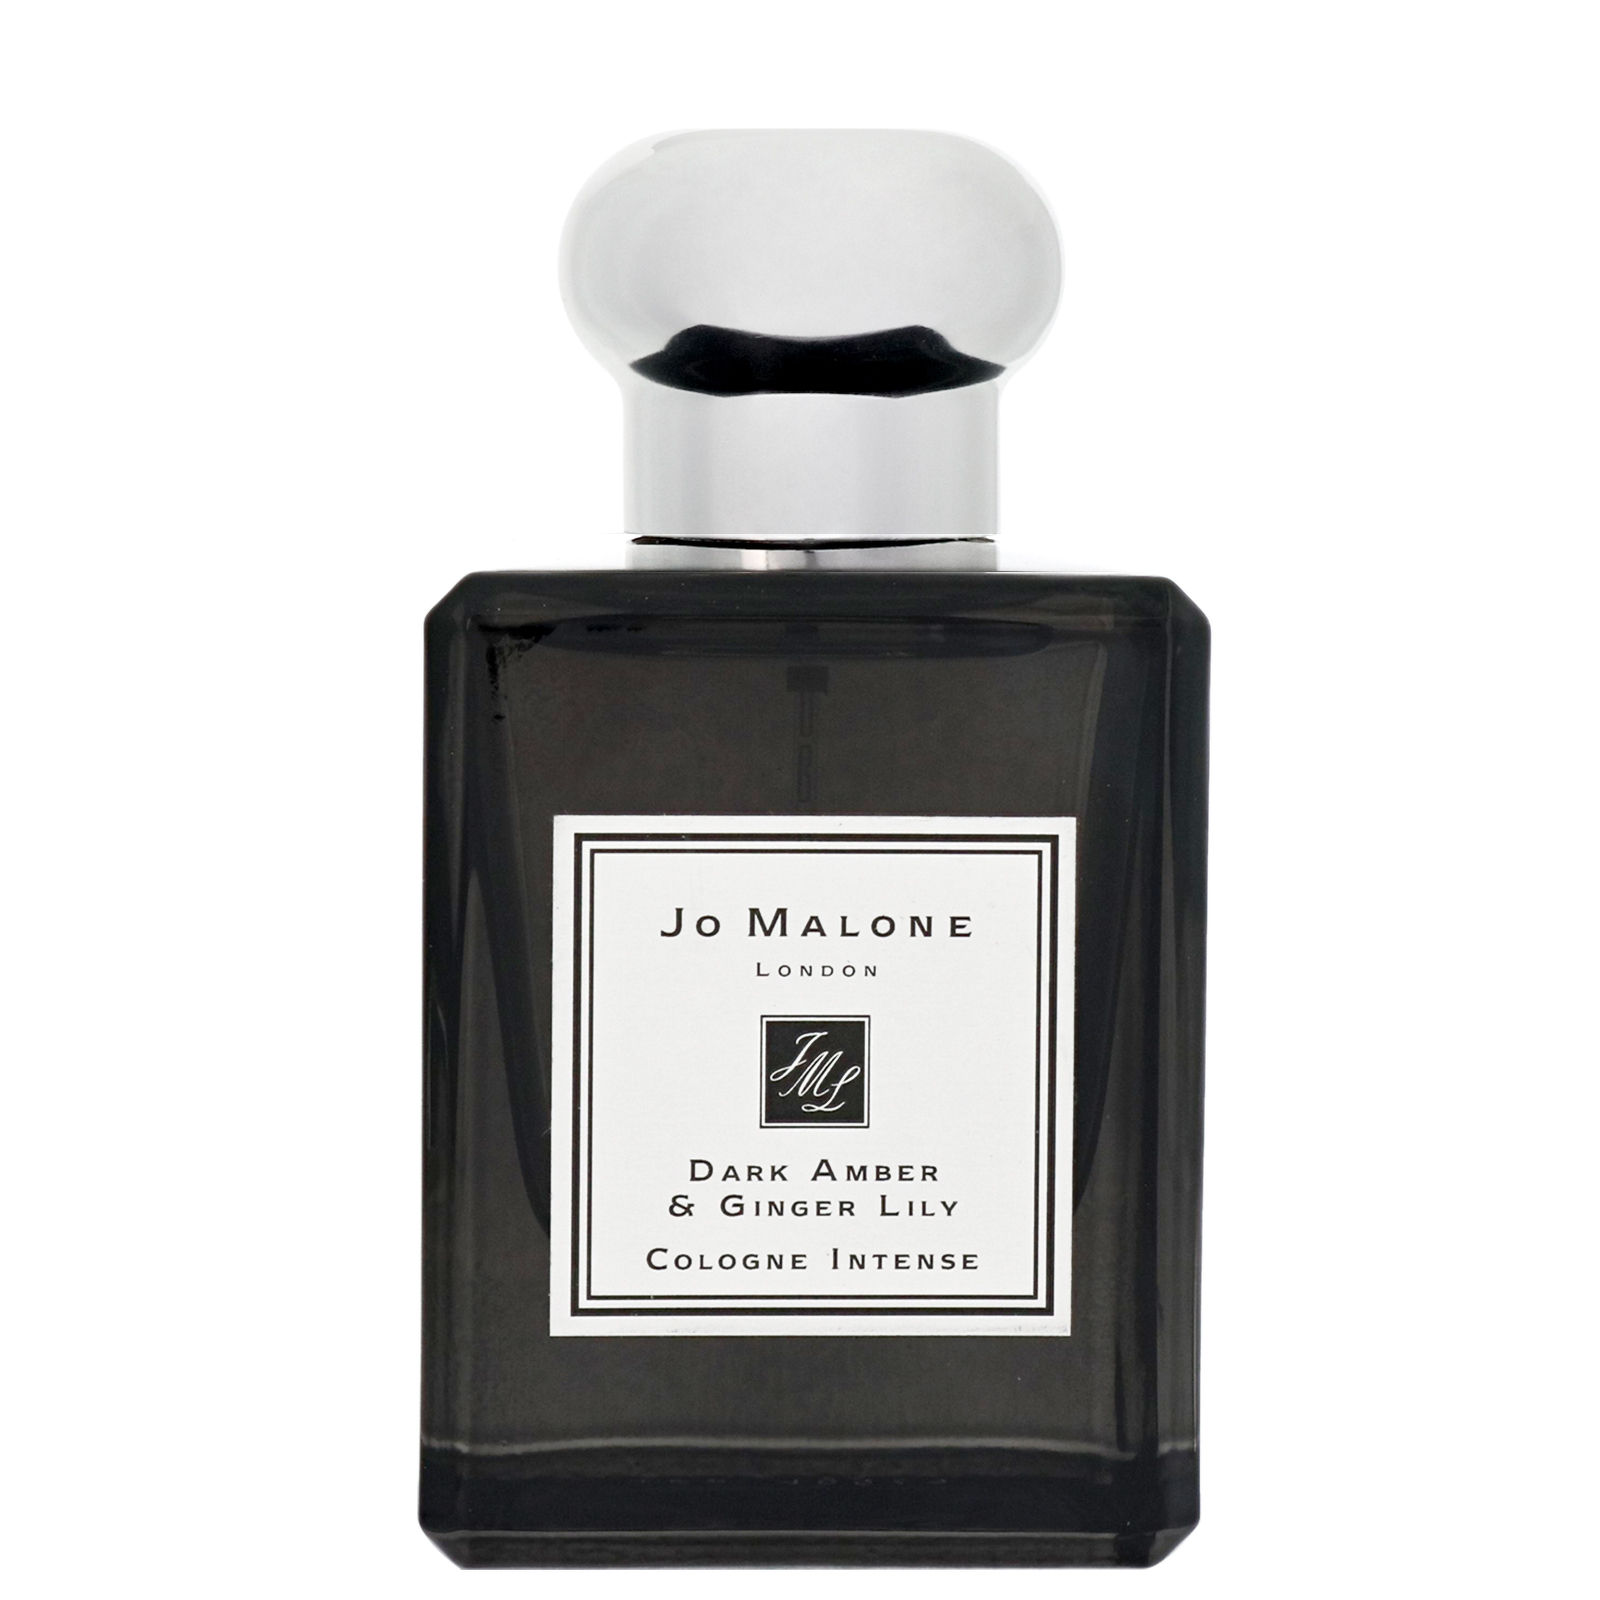 Jo Malone Dark Amber & Ginger Lily Eau de Cologne Intense Spray 50ml